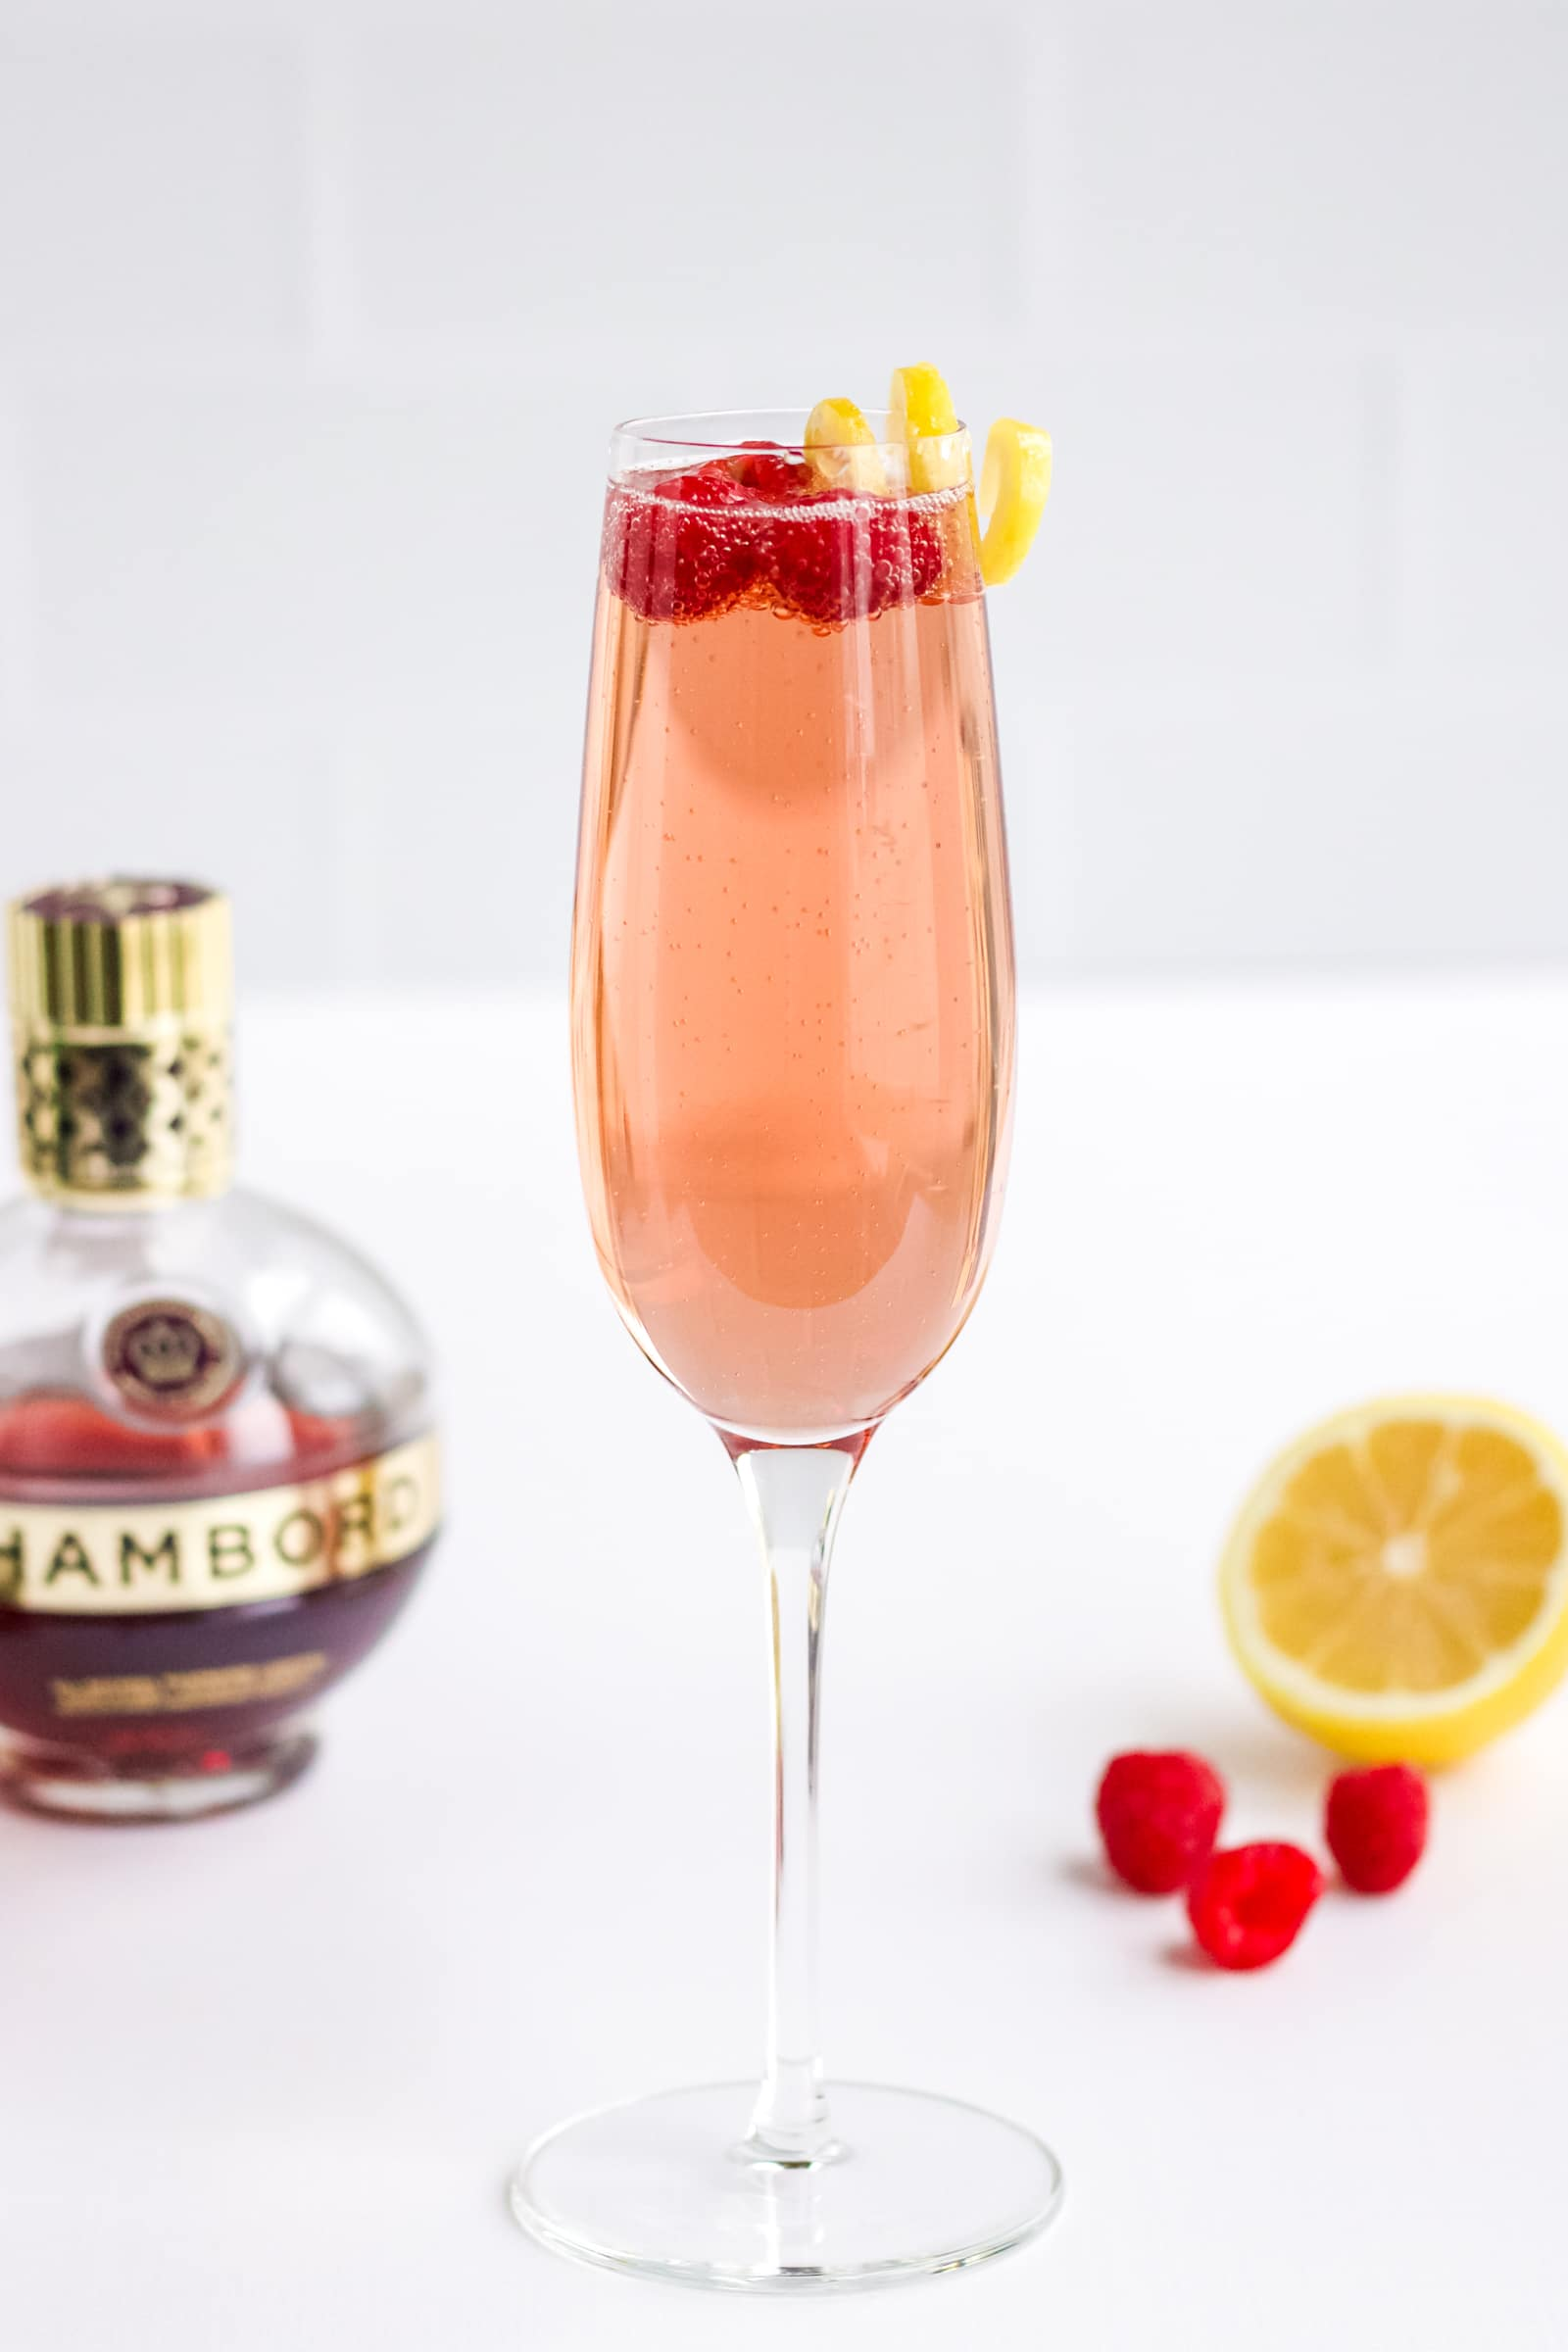 A glass of Chambord and Champagne with a lemon twist and three fresh raspberries on top.